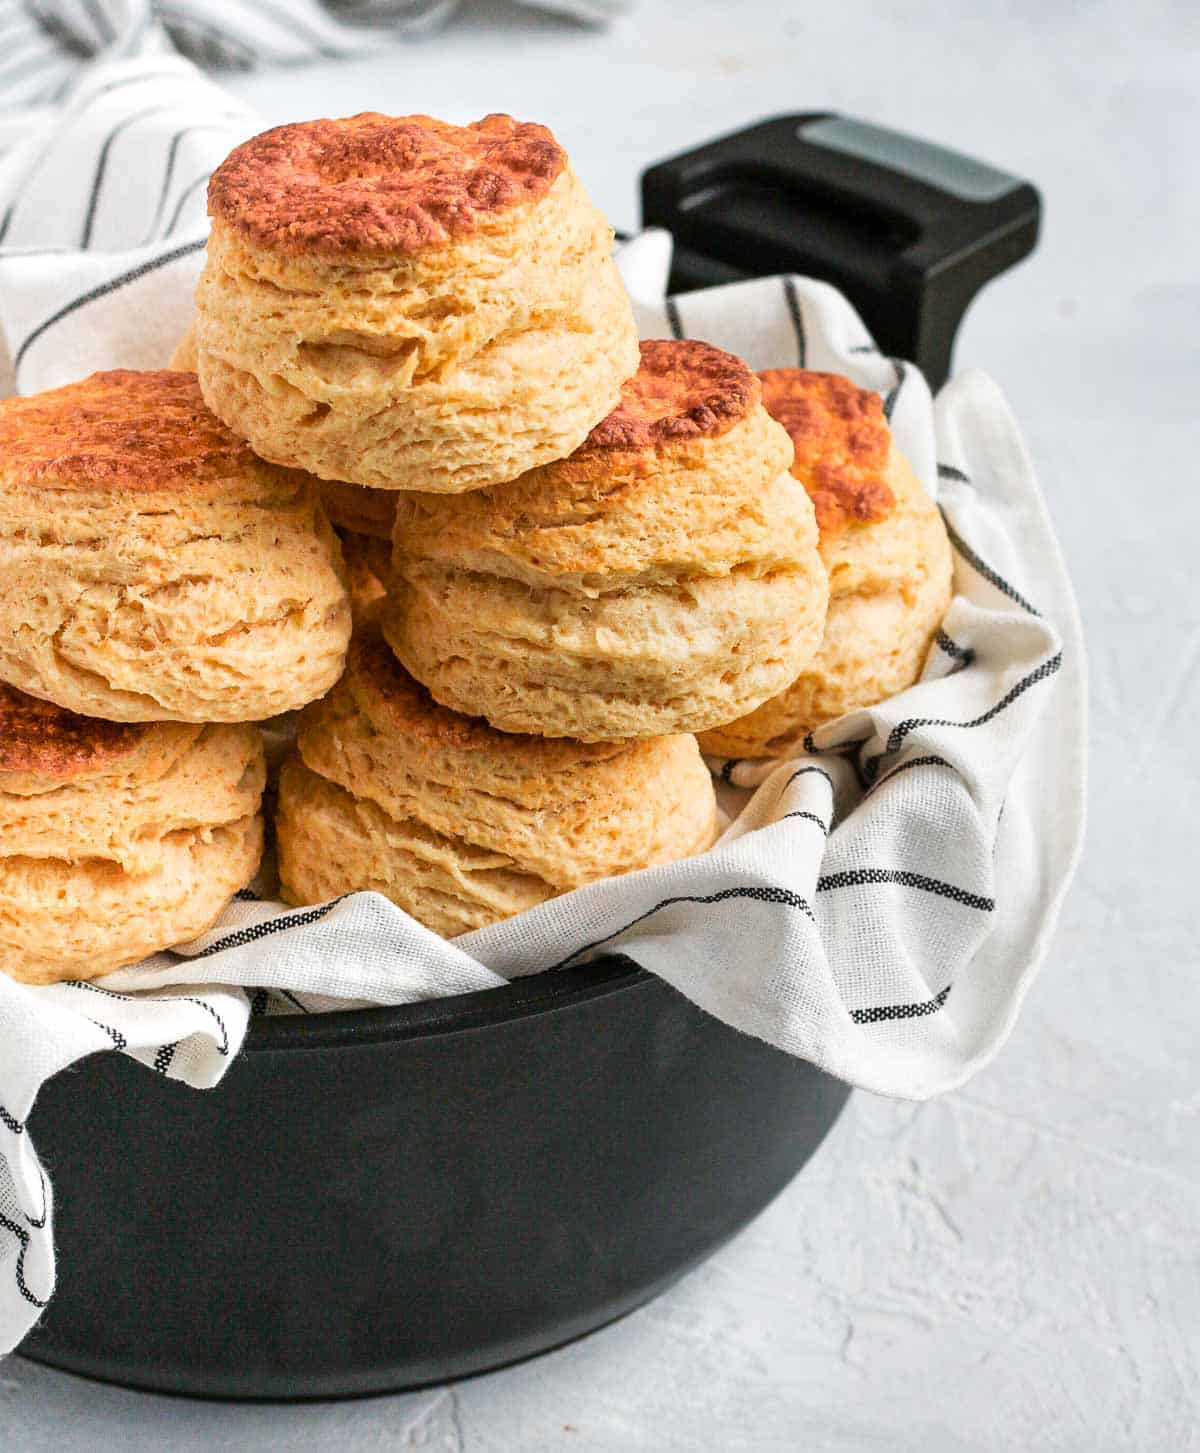 Scones stacked inside the Remoska.